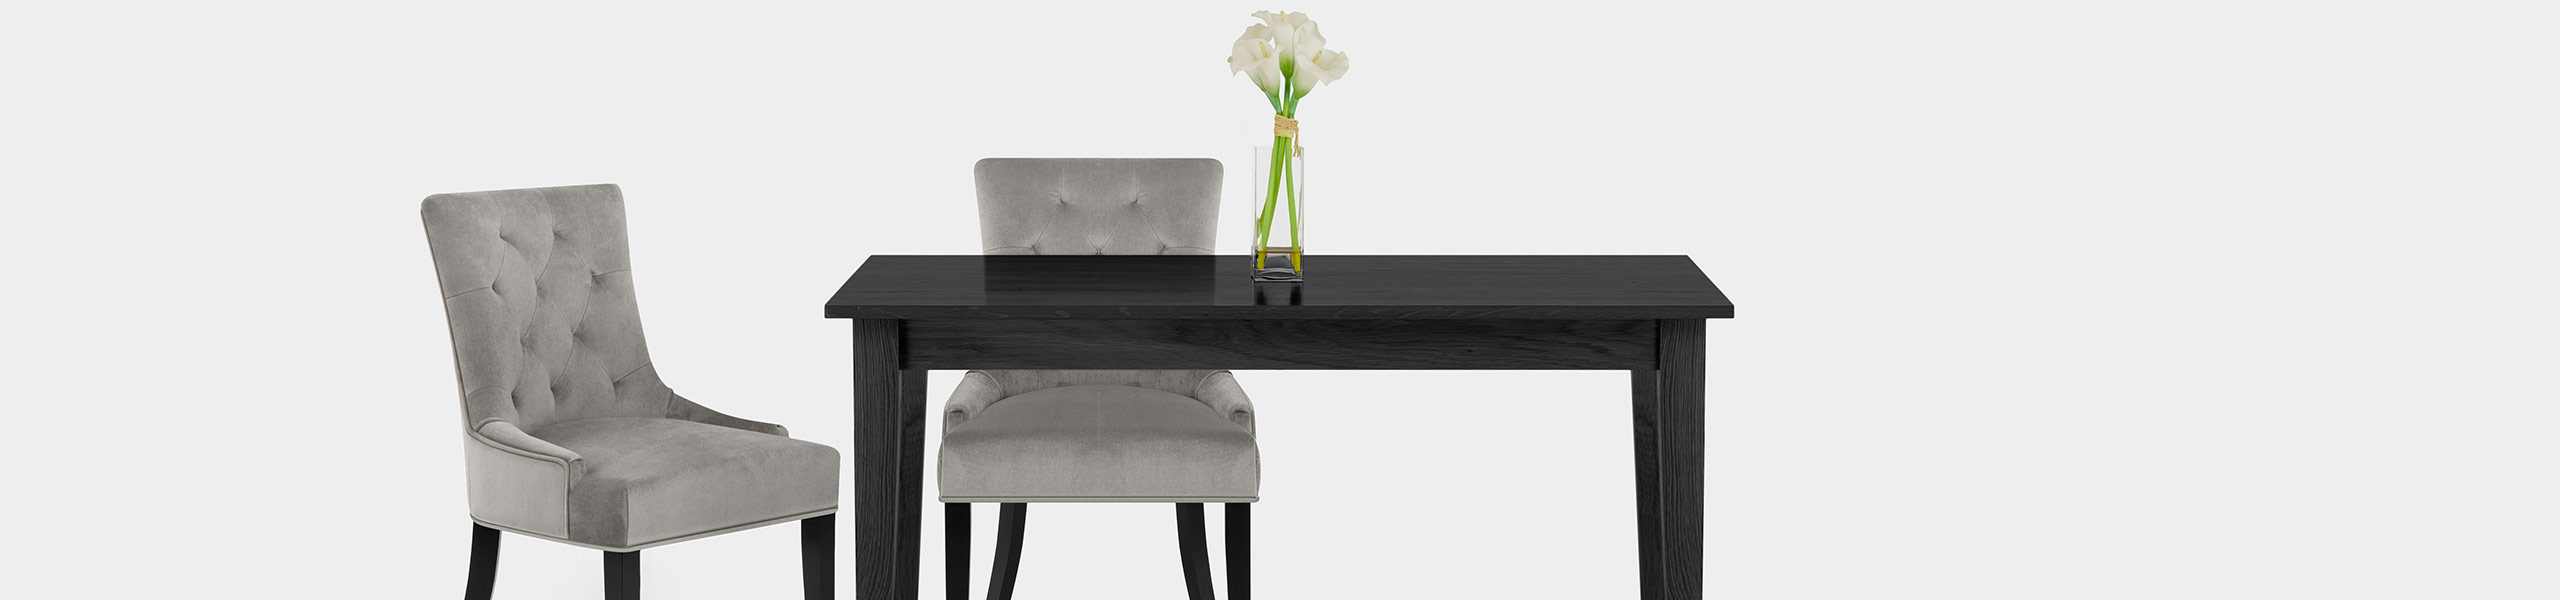 Newbury Dining Chair Grey Velvet Video Banner